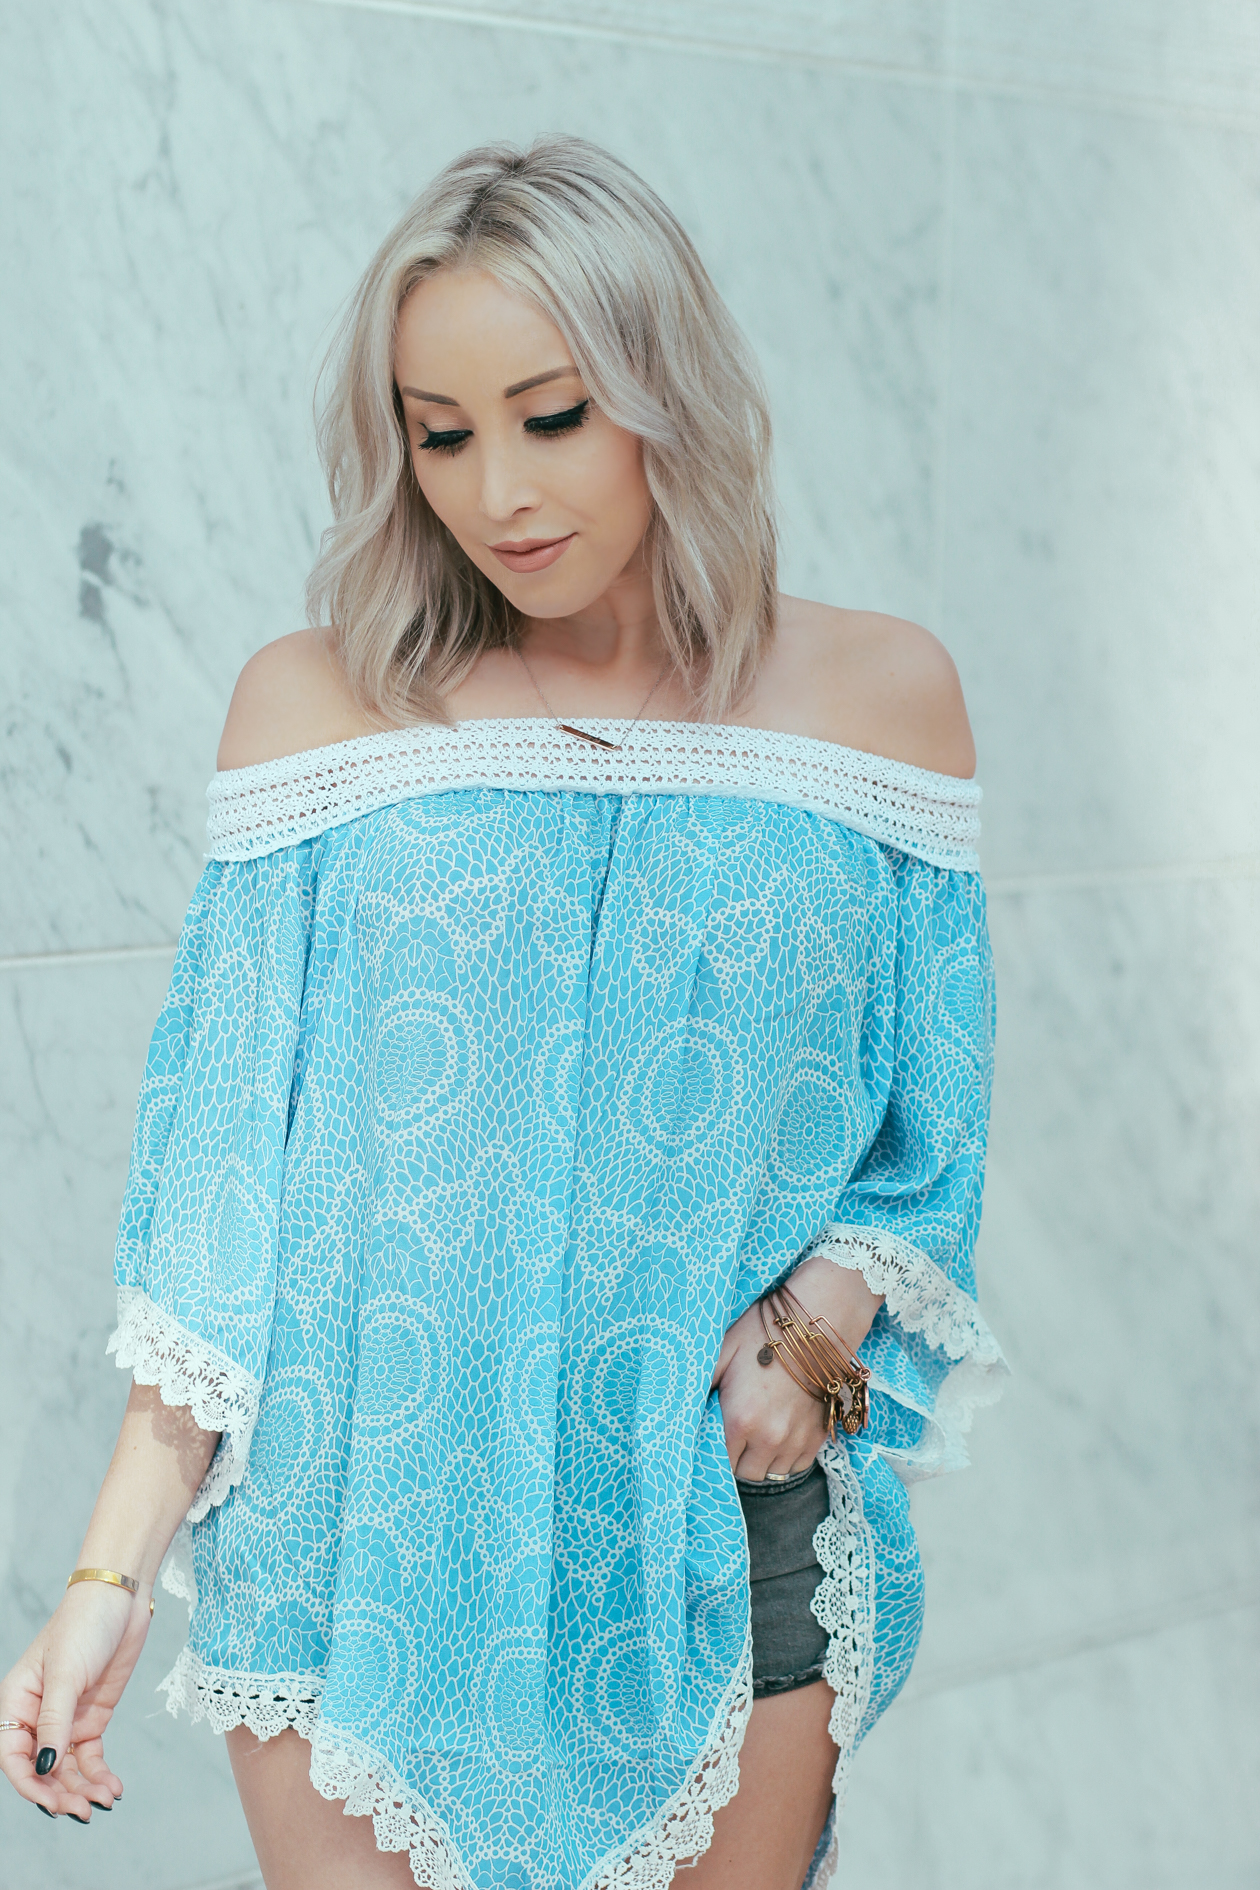 Blue Off The Shoulder Top for Summer | BlondieintheCity.com